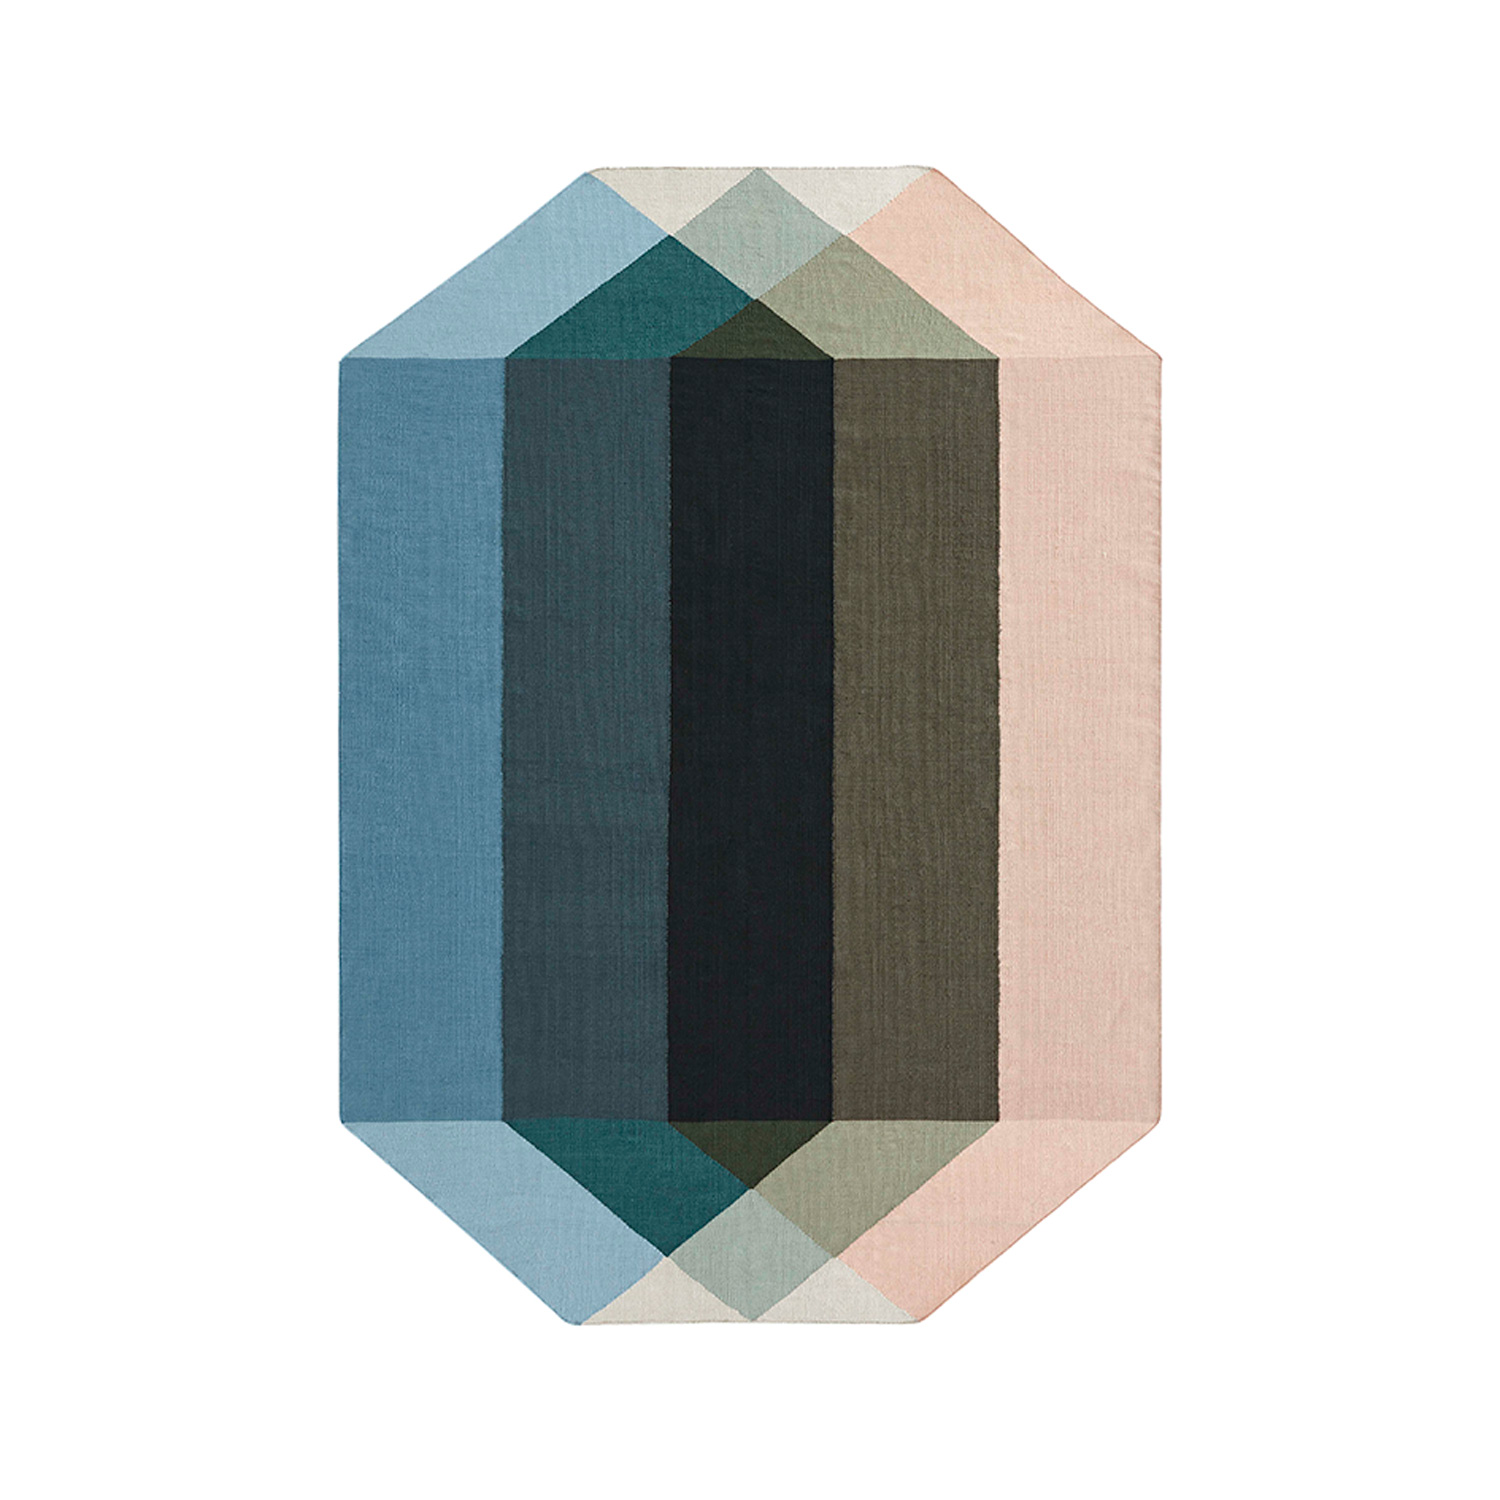 Diamond Rug - <p>Diamond is Charlotte Lancelot's new collection of outdoor kilims for GAN, made from 100% recycled PET. The designer's goal was to create a multi-faceted coloured diamond, thanks to the superposition of different translucent geometric figures. The result offers fascinating visual effects of transparency and gradients that show that beauty and sustainability, at GAN, always go hand in hand. The manufacturing technique is Kilim and due to the handmade nature of the GAN product, slight variations in size, colour, finish are normal. </p>  | Matter of Stuff